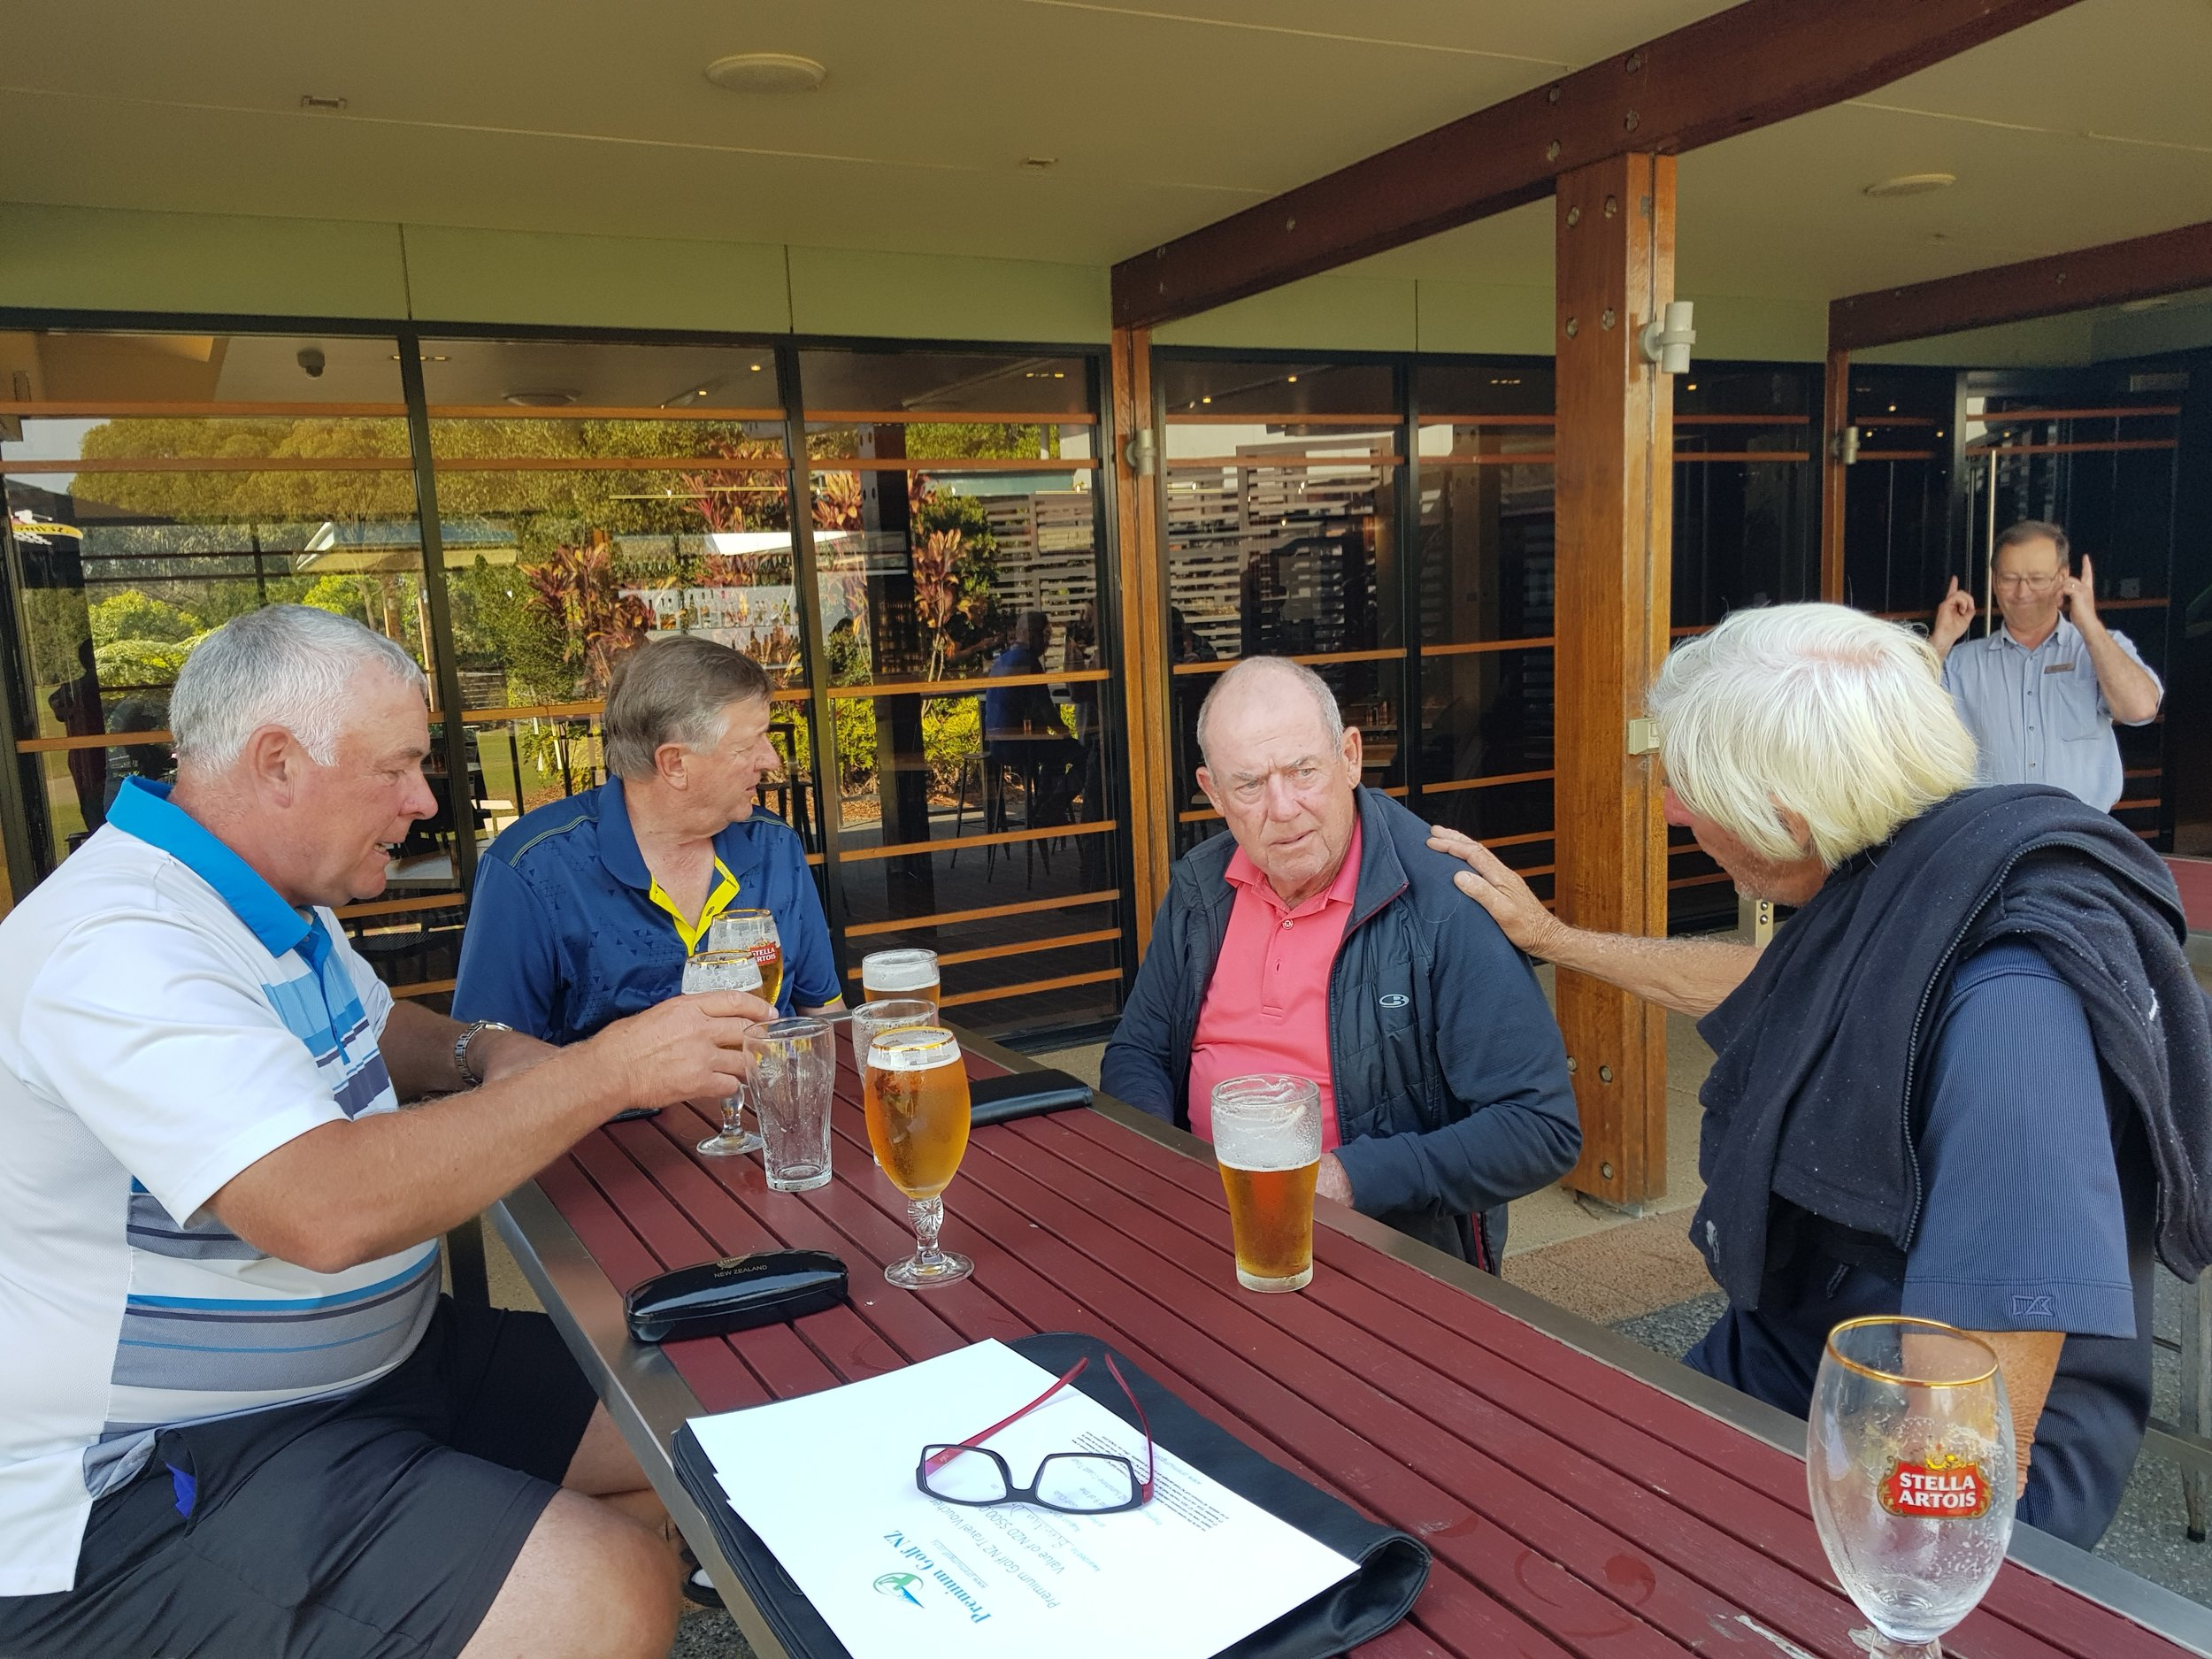 Enjoying a post round beer while DISSECTING the great golf courses on the sunshine coast!